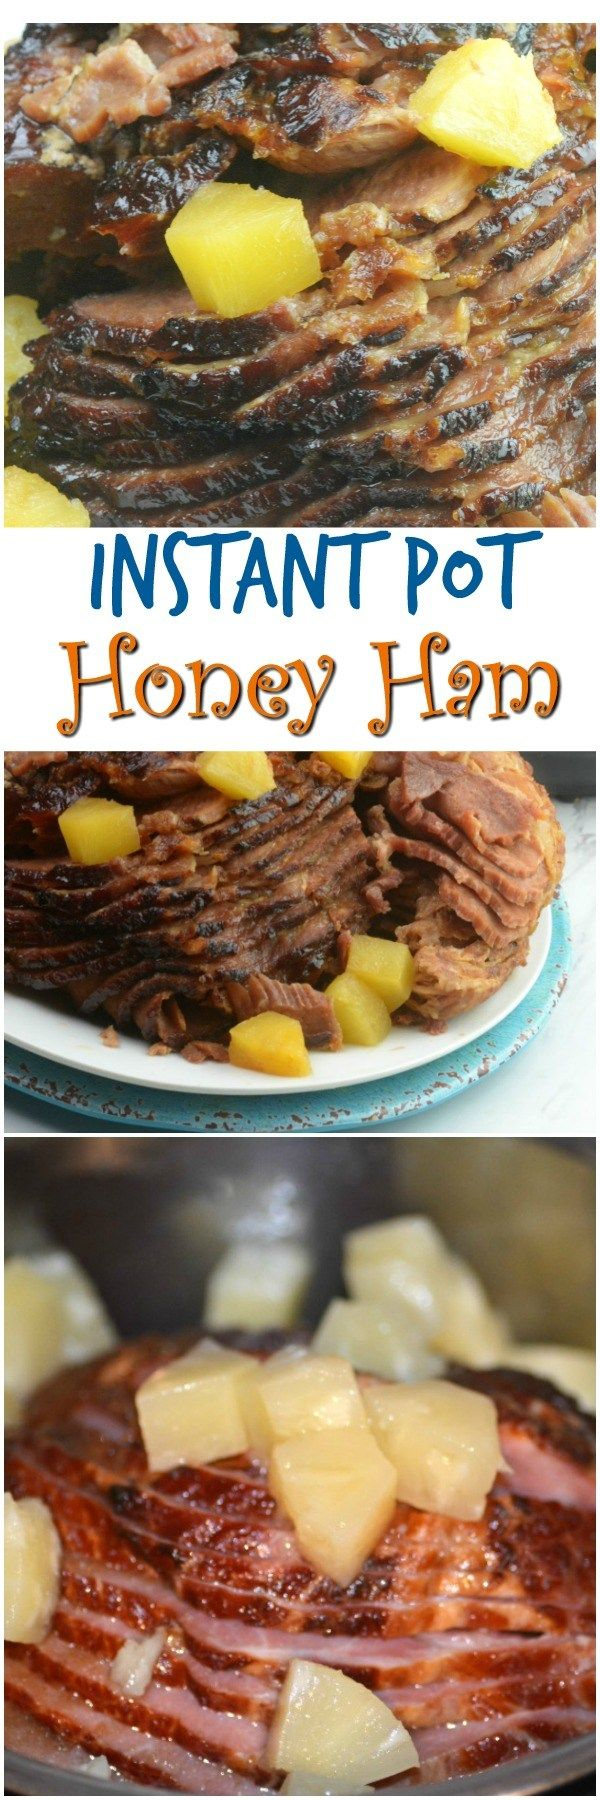 Best 25 Crock Pot Ham Ideas On Pinterest Crockpot Ham